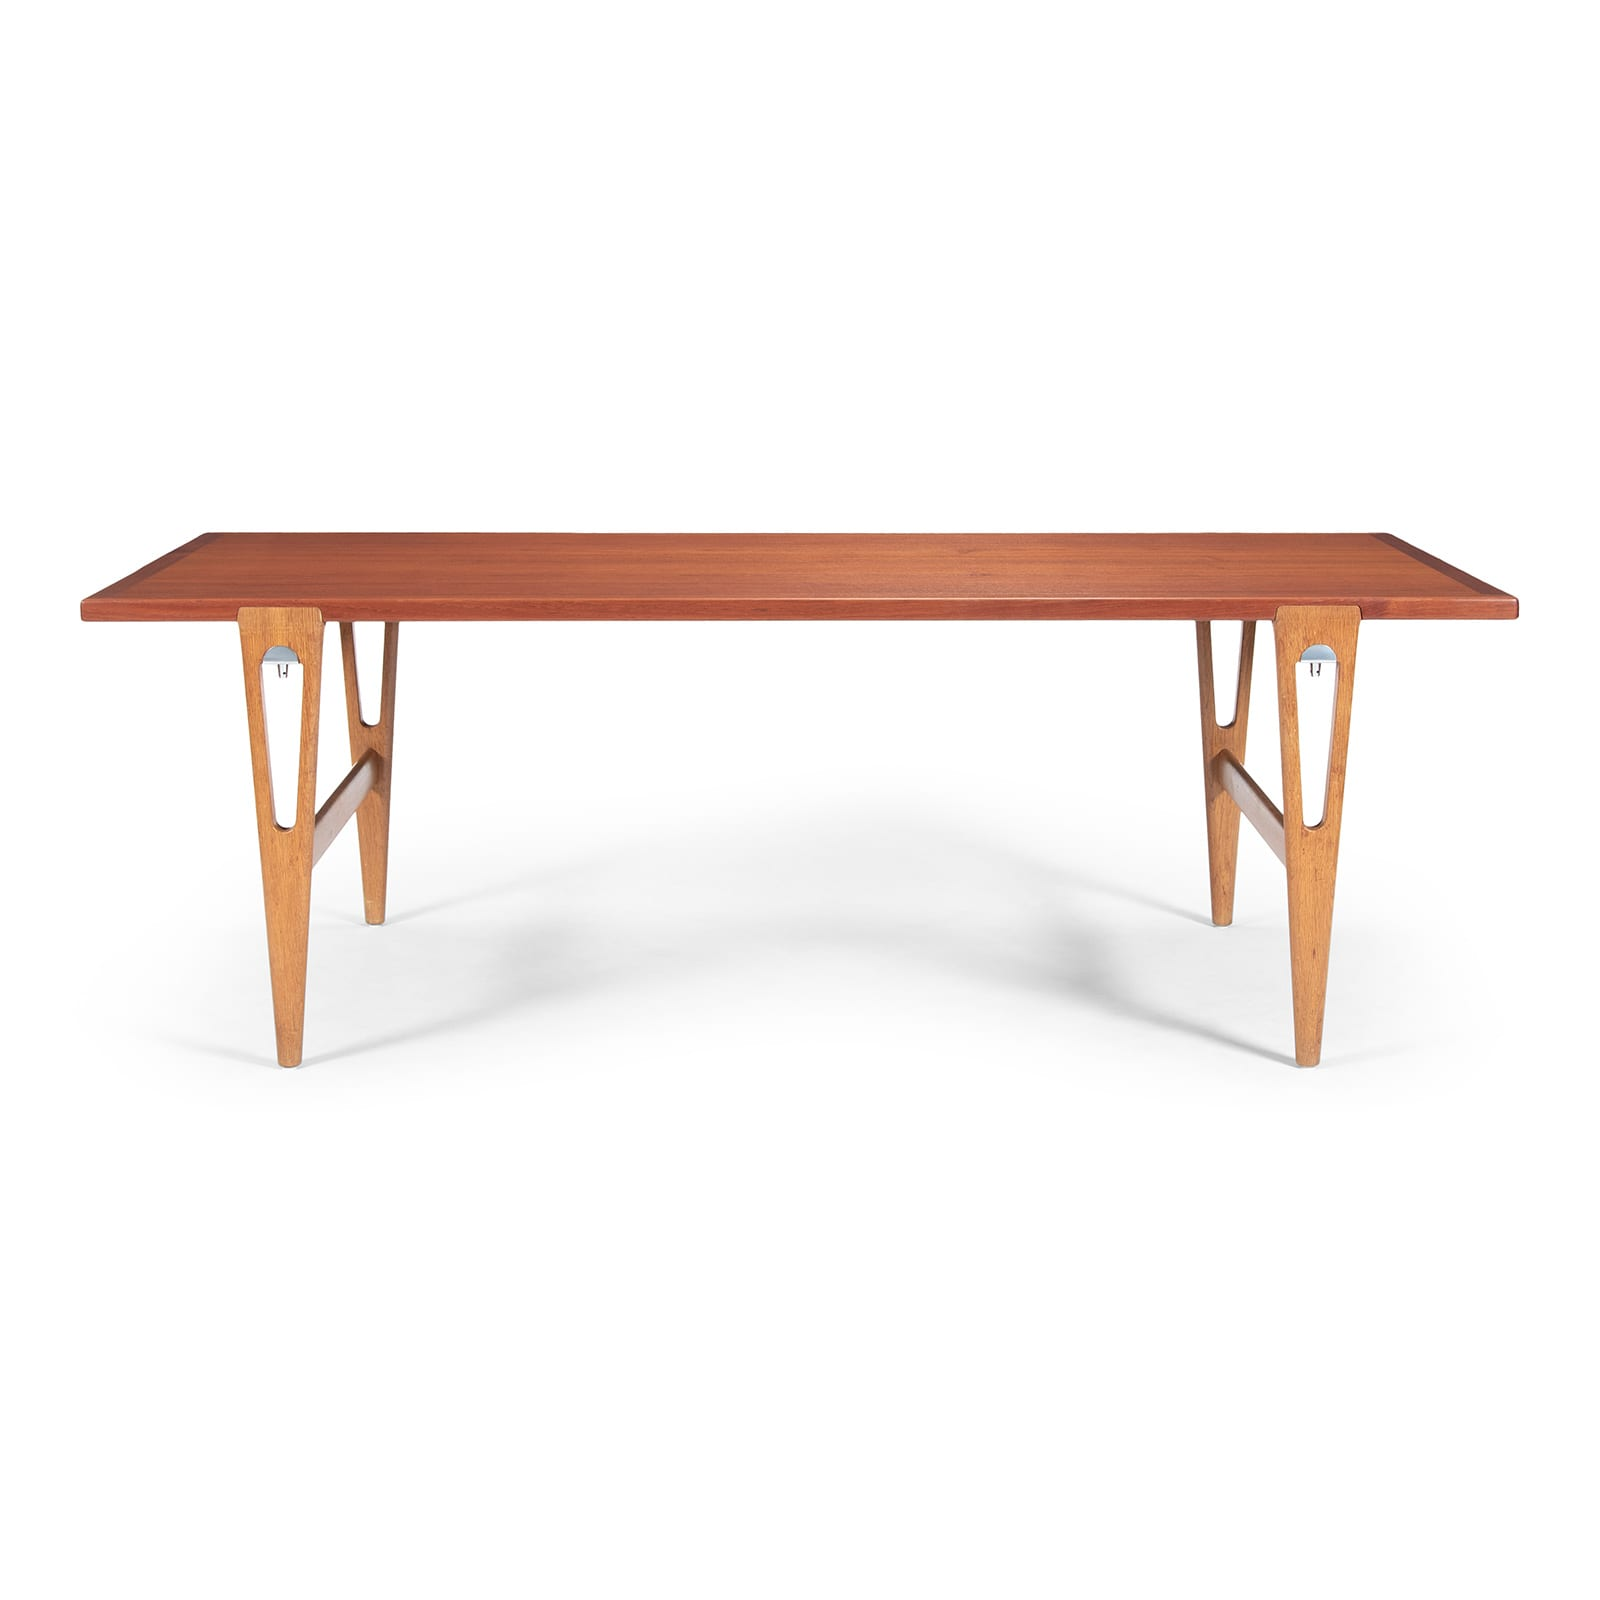 A worktable